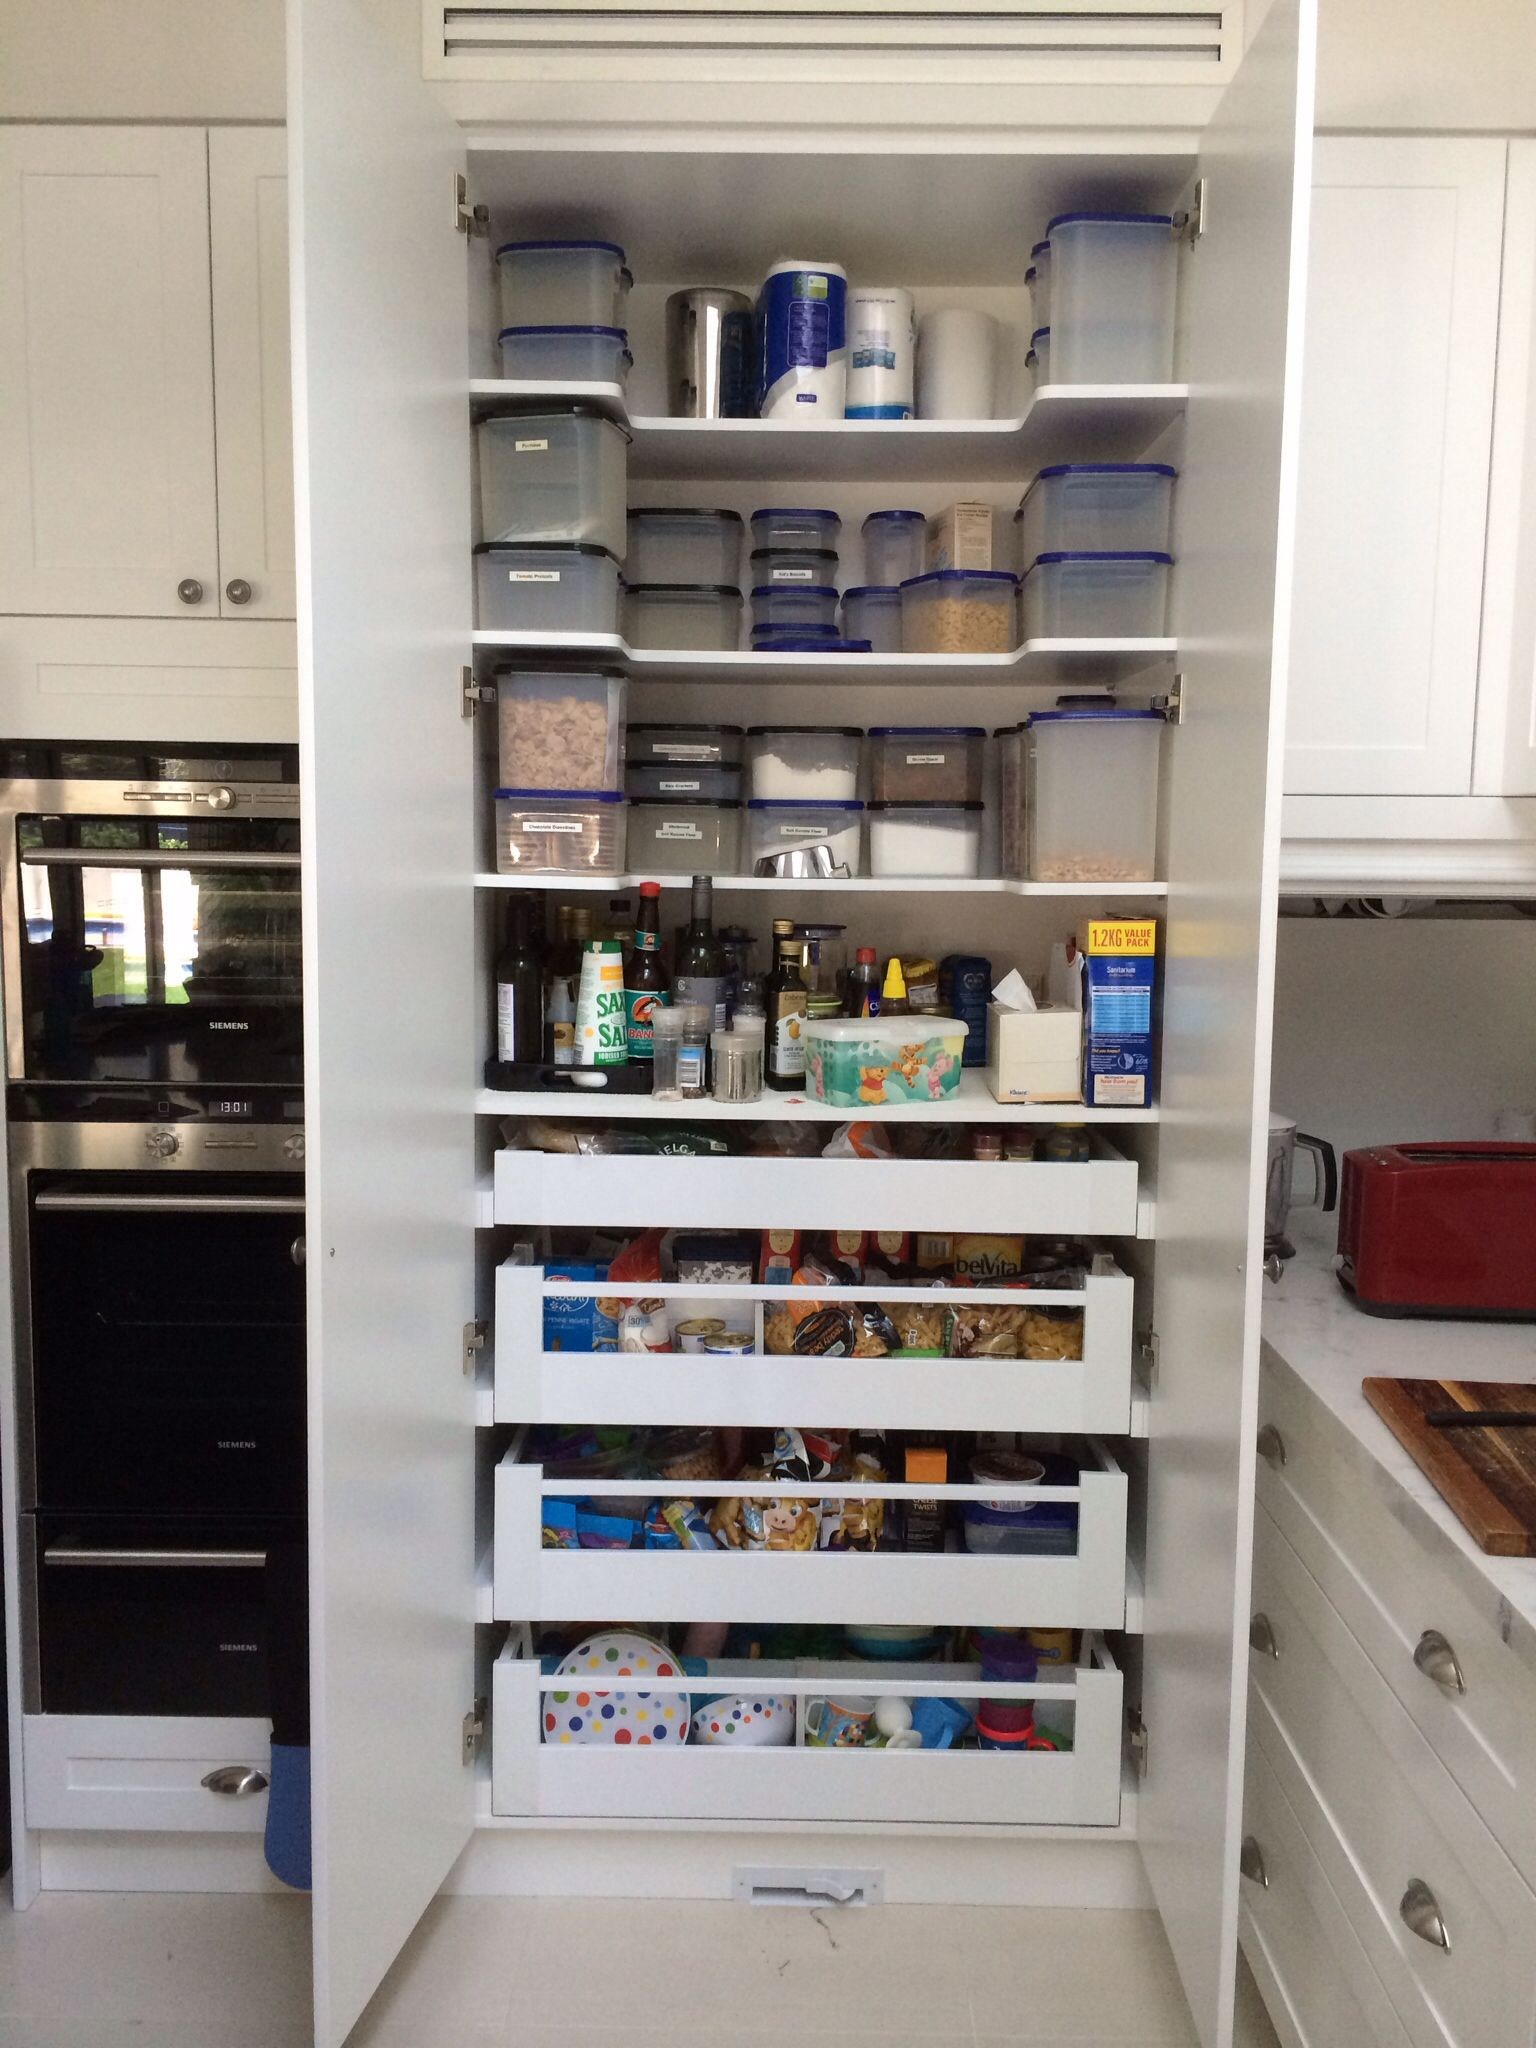 drawers inside the pantry has been working really well blum